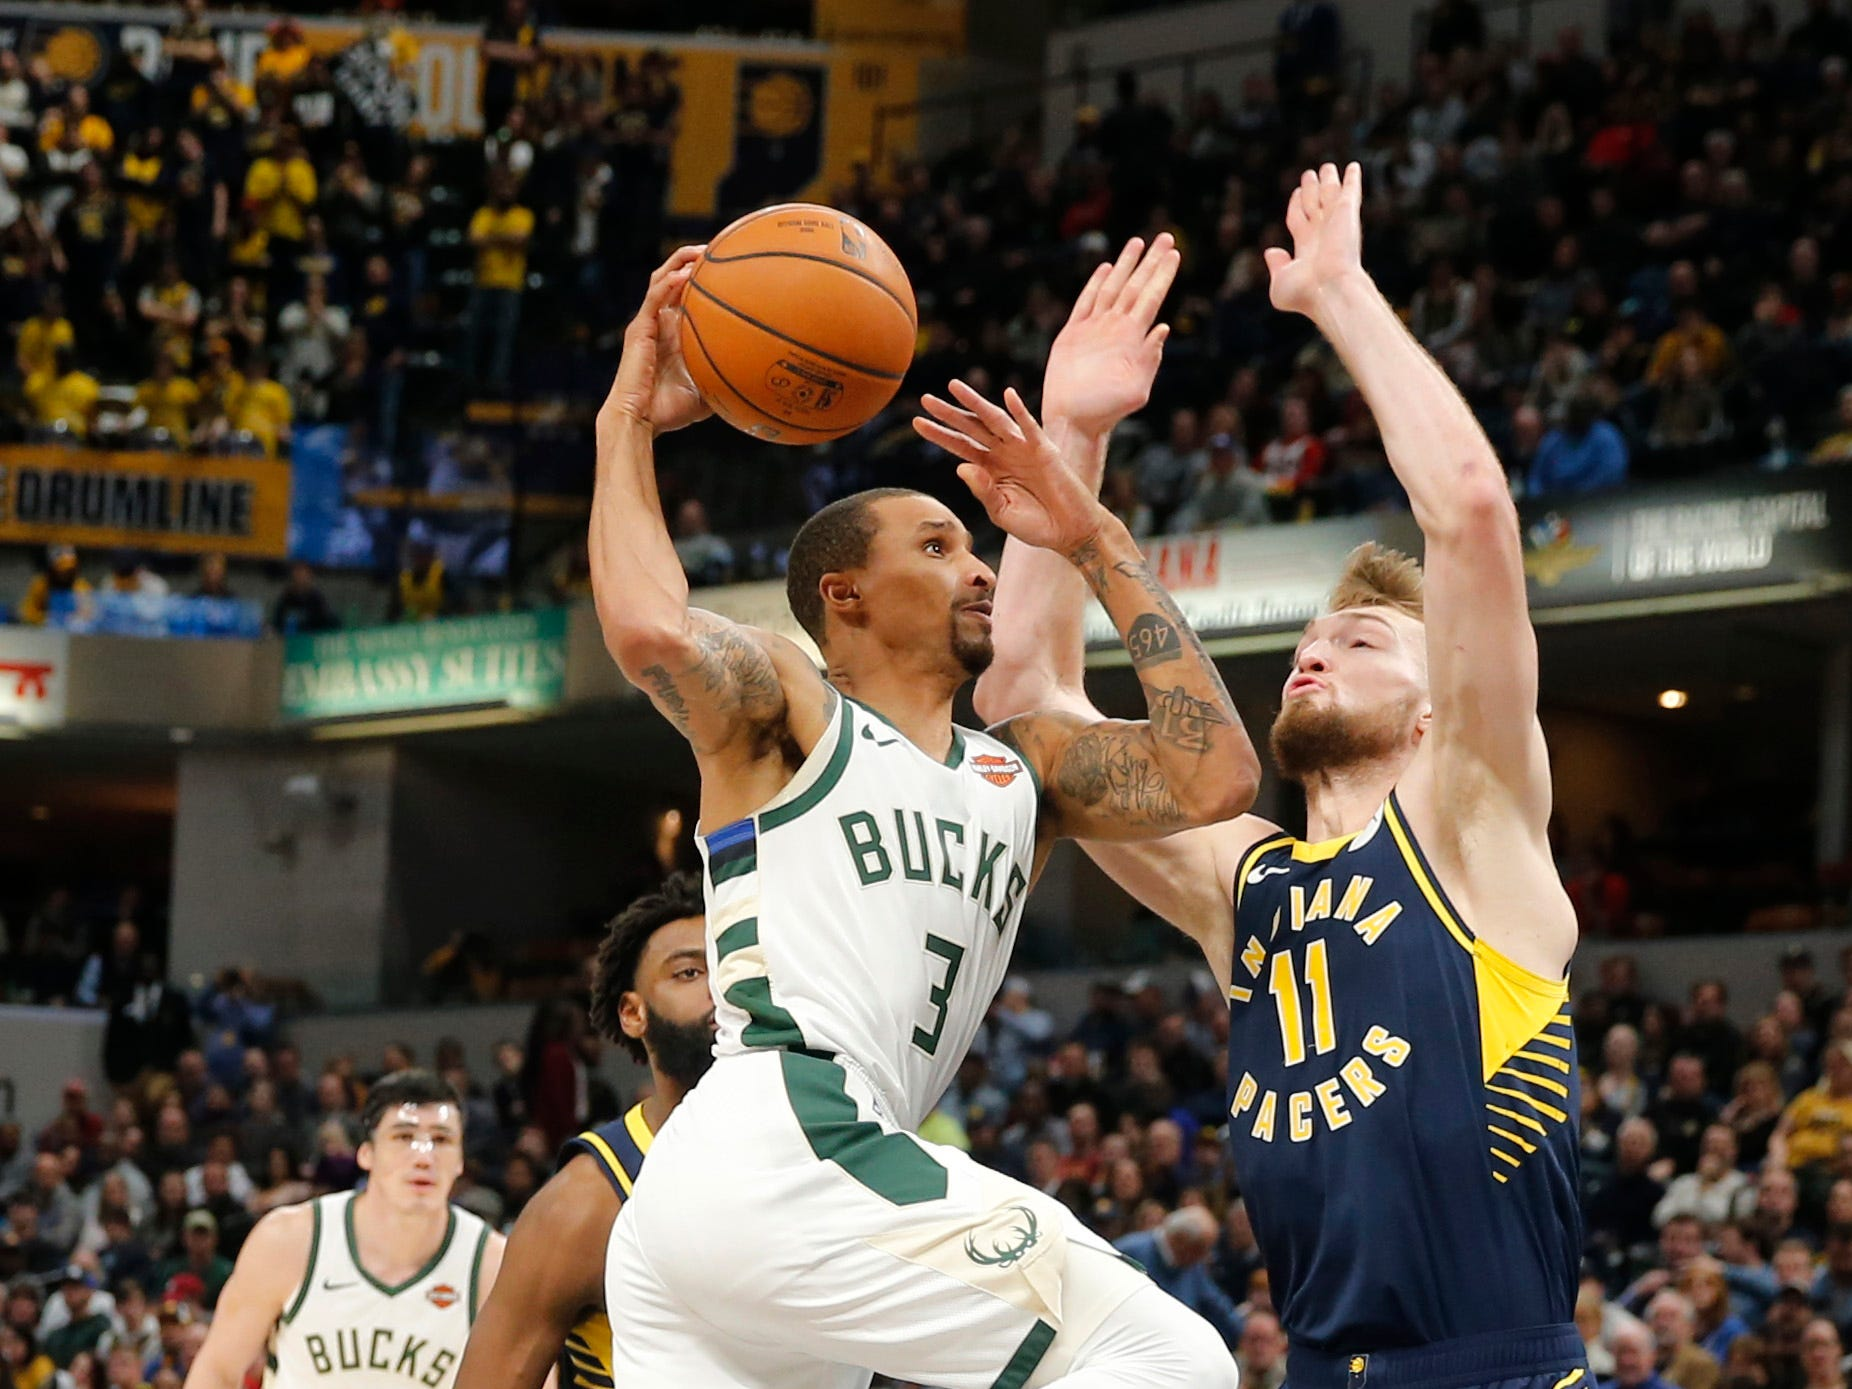 Bucks guard George Hill goes up for a shot against Pacers forward Domantas Sabonis after driving to the basket during the third quarter.